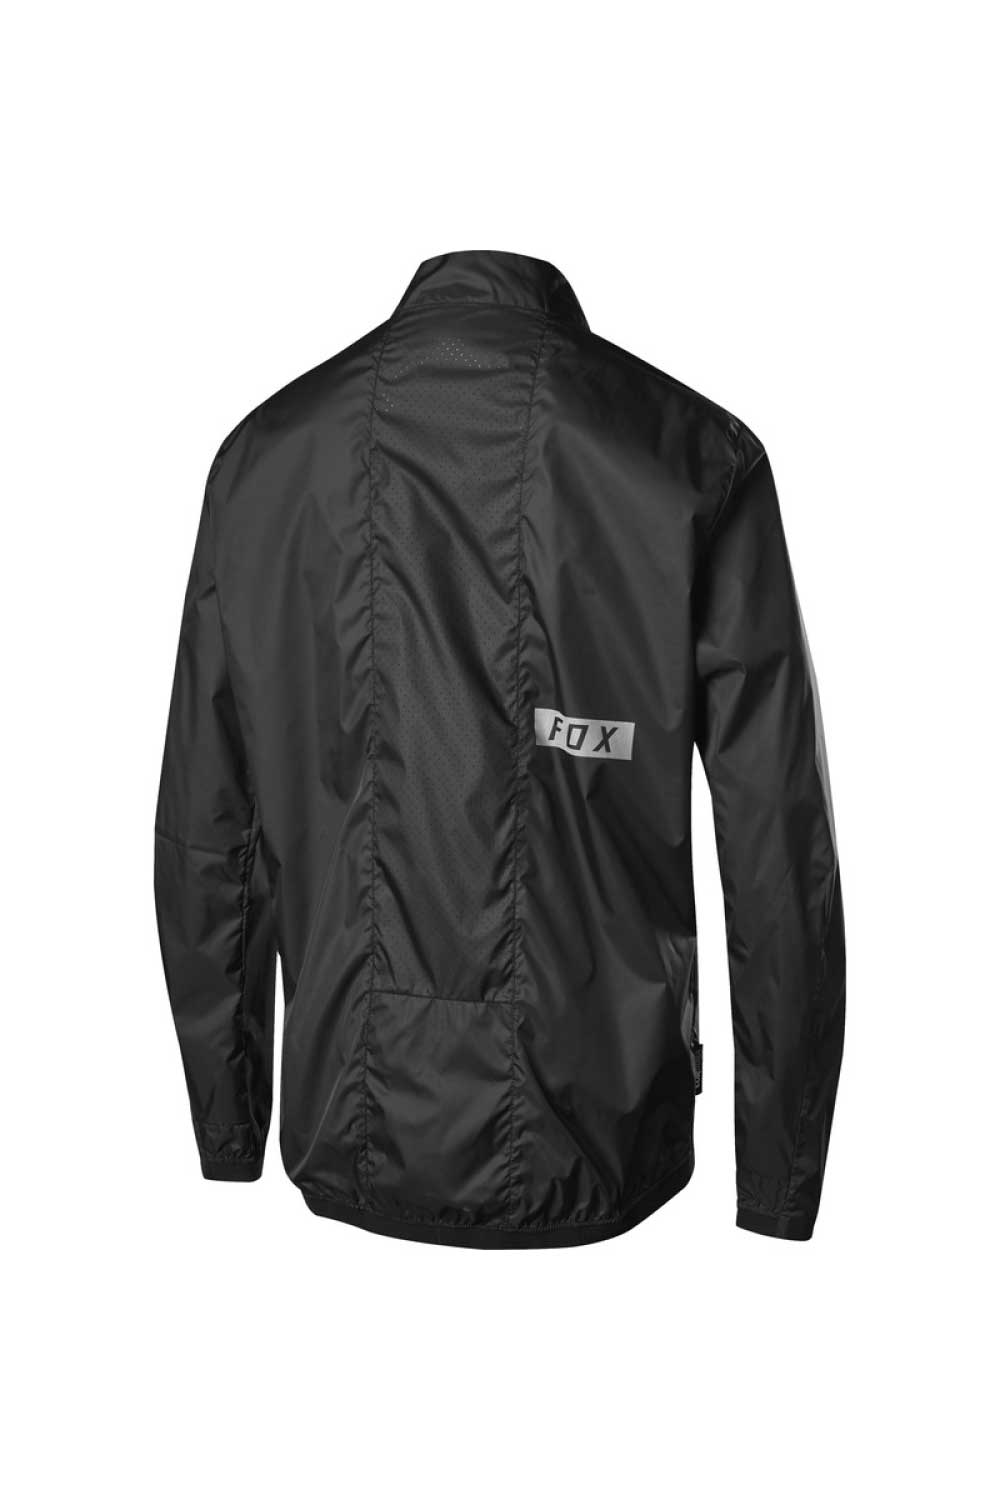 Fox Racing 2021 Defend Wind Jacket